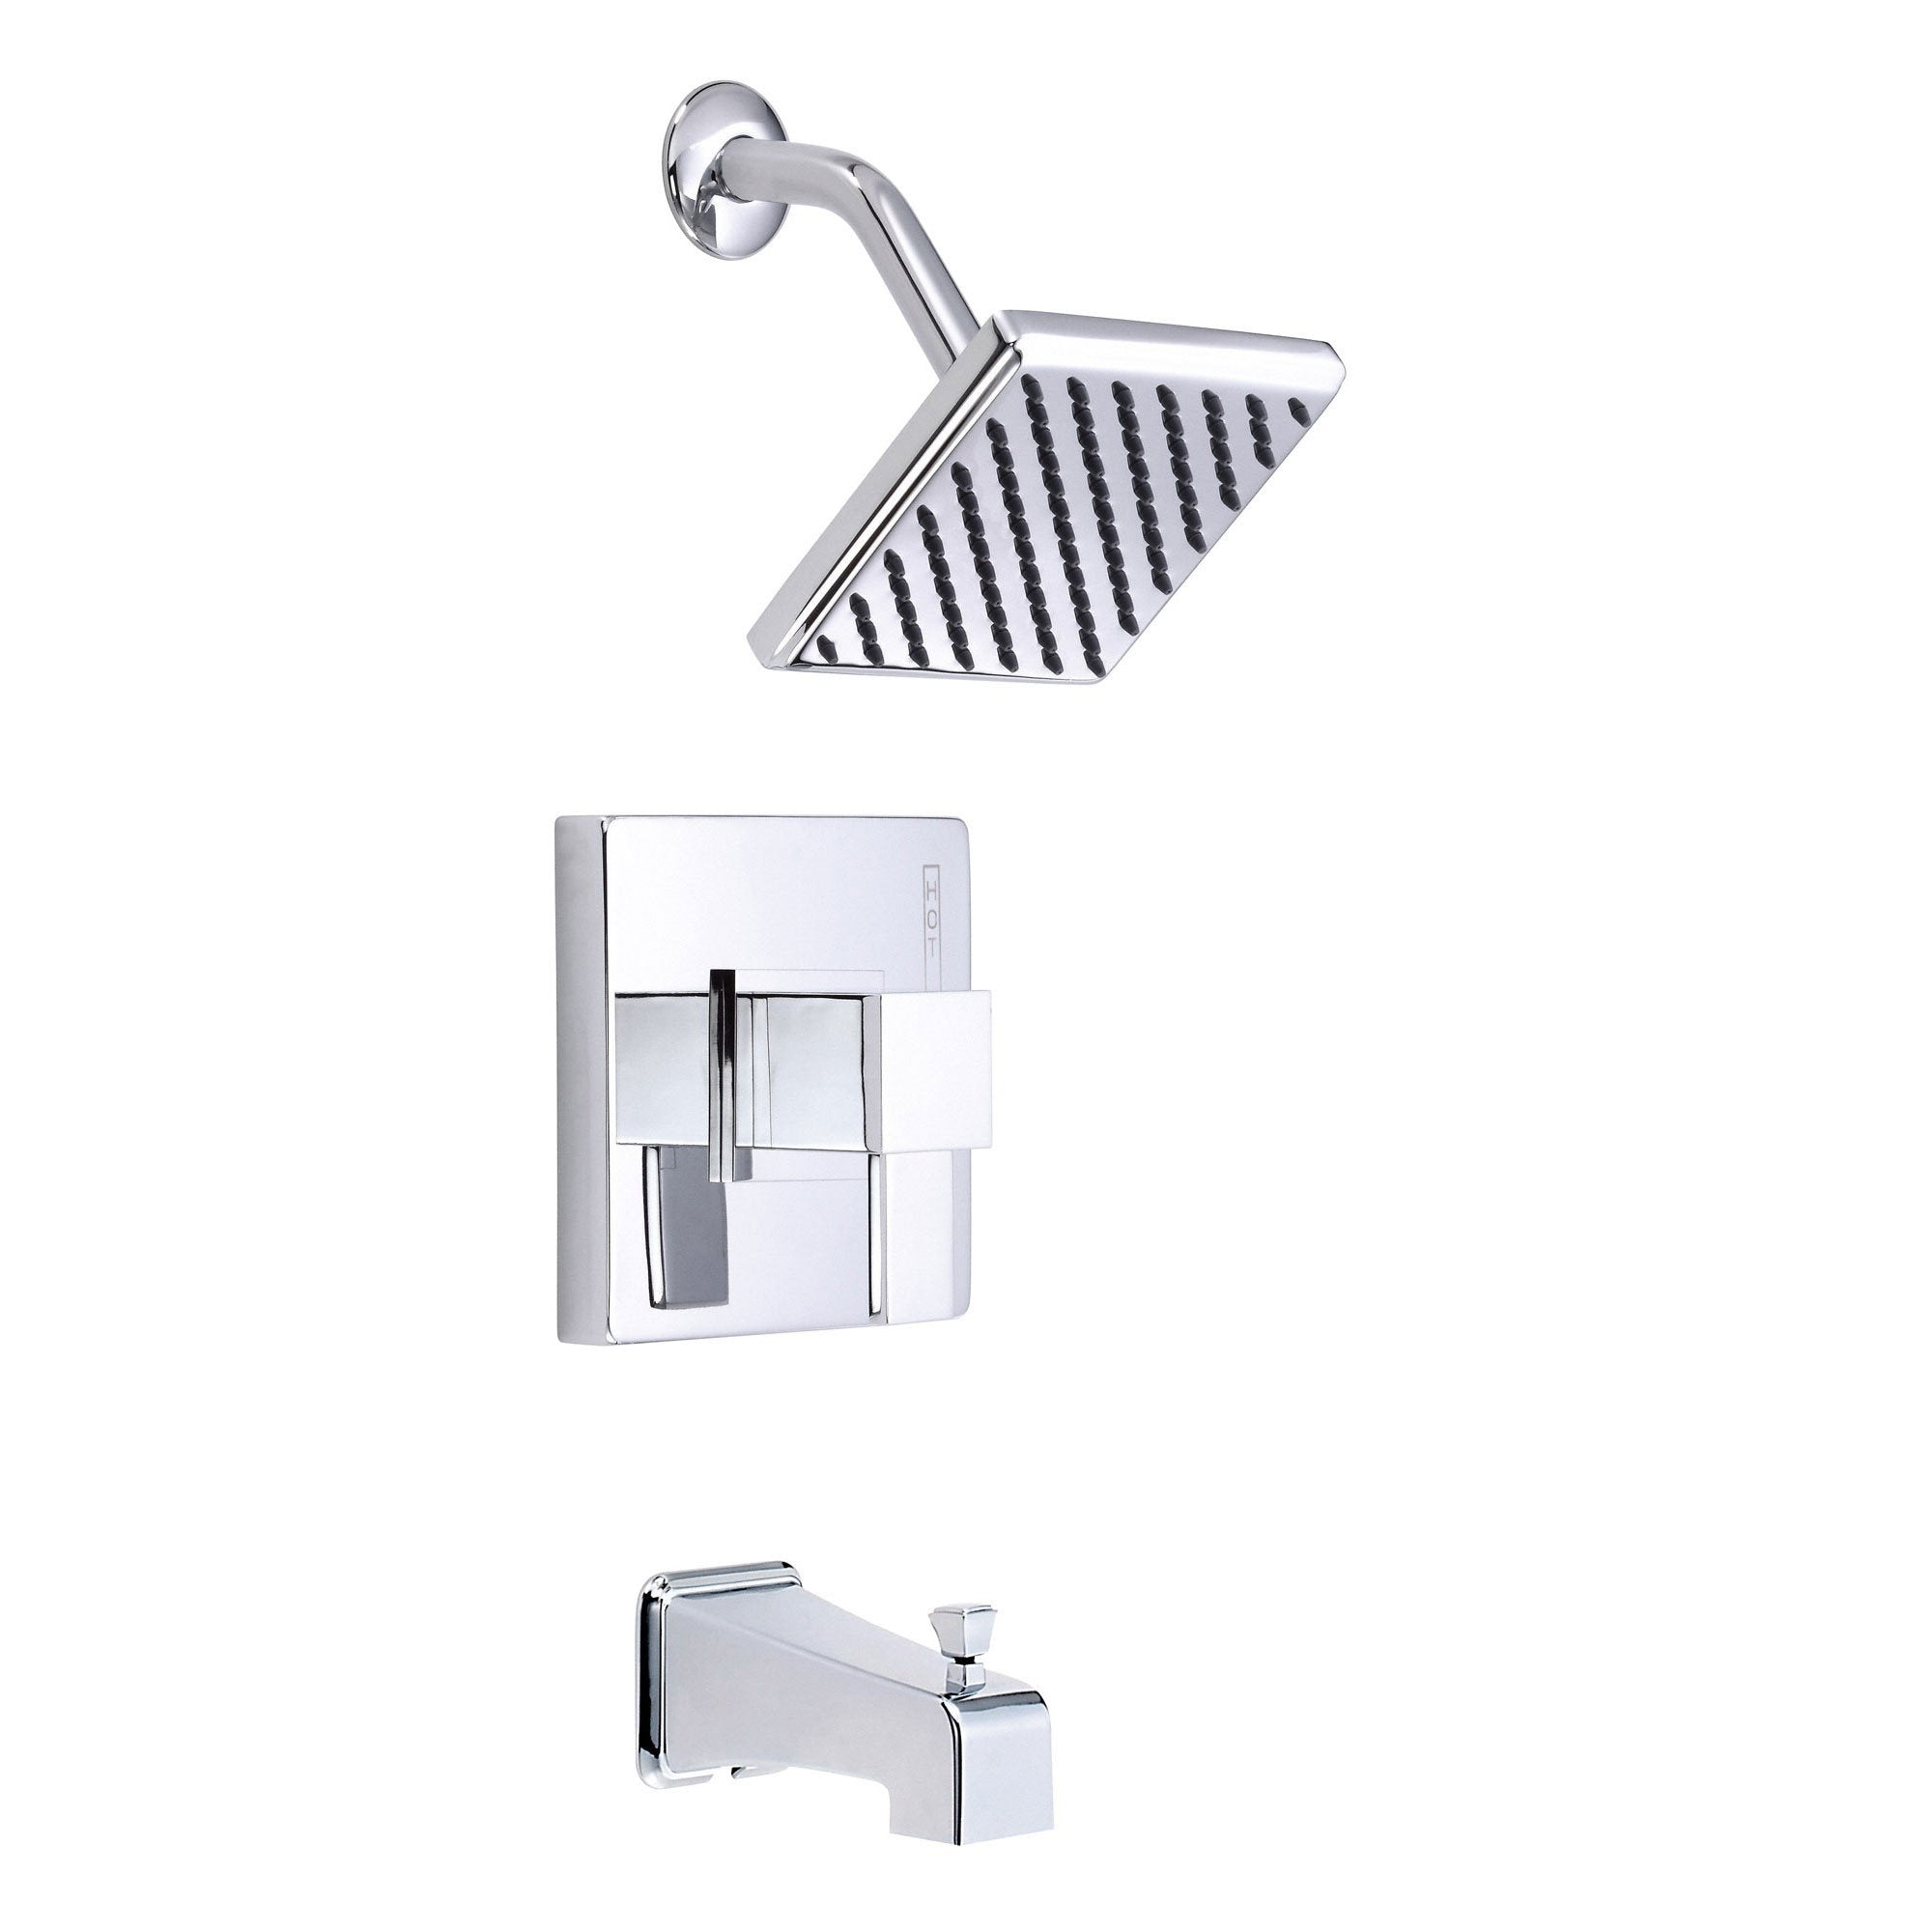 Danze Reef Chrome Single Handle Tub and Shower Combo Faucet INCLUDES Rough-in Valve